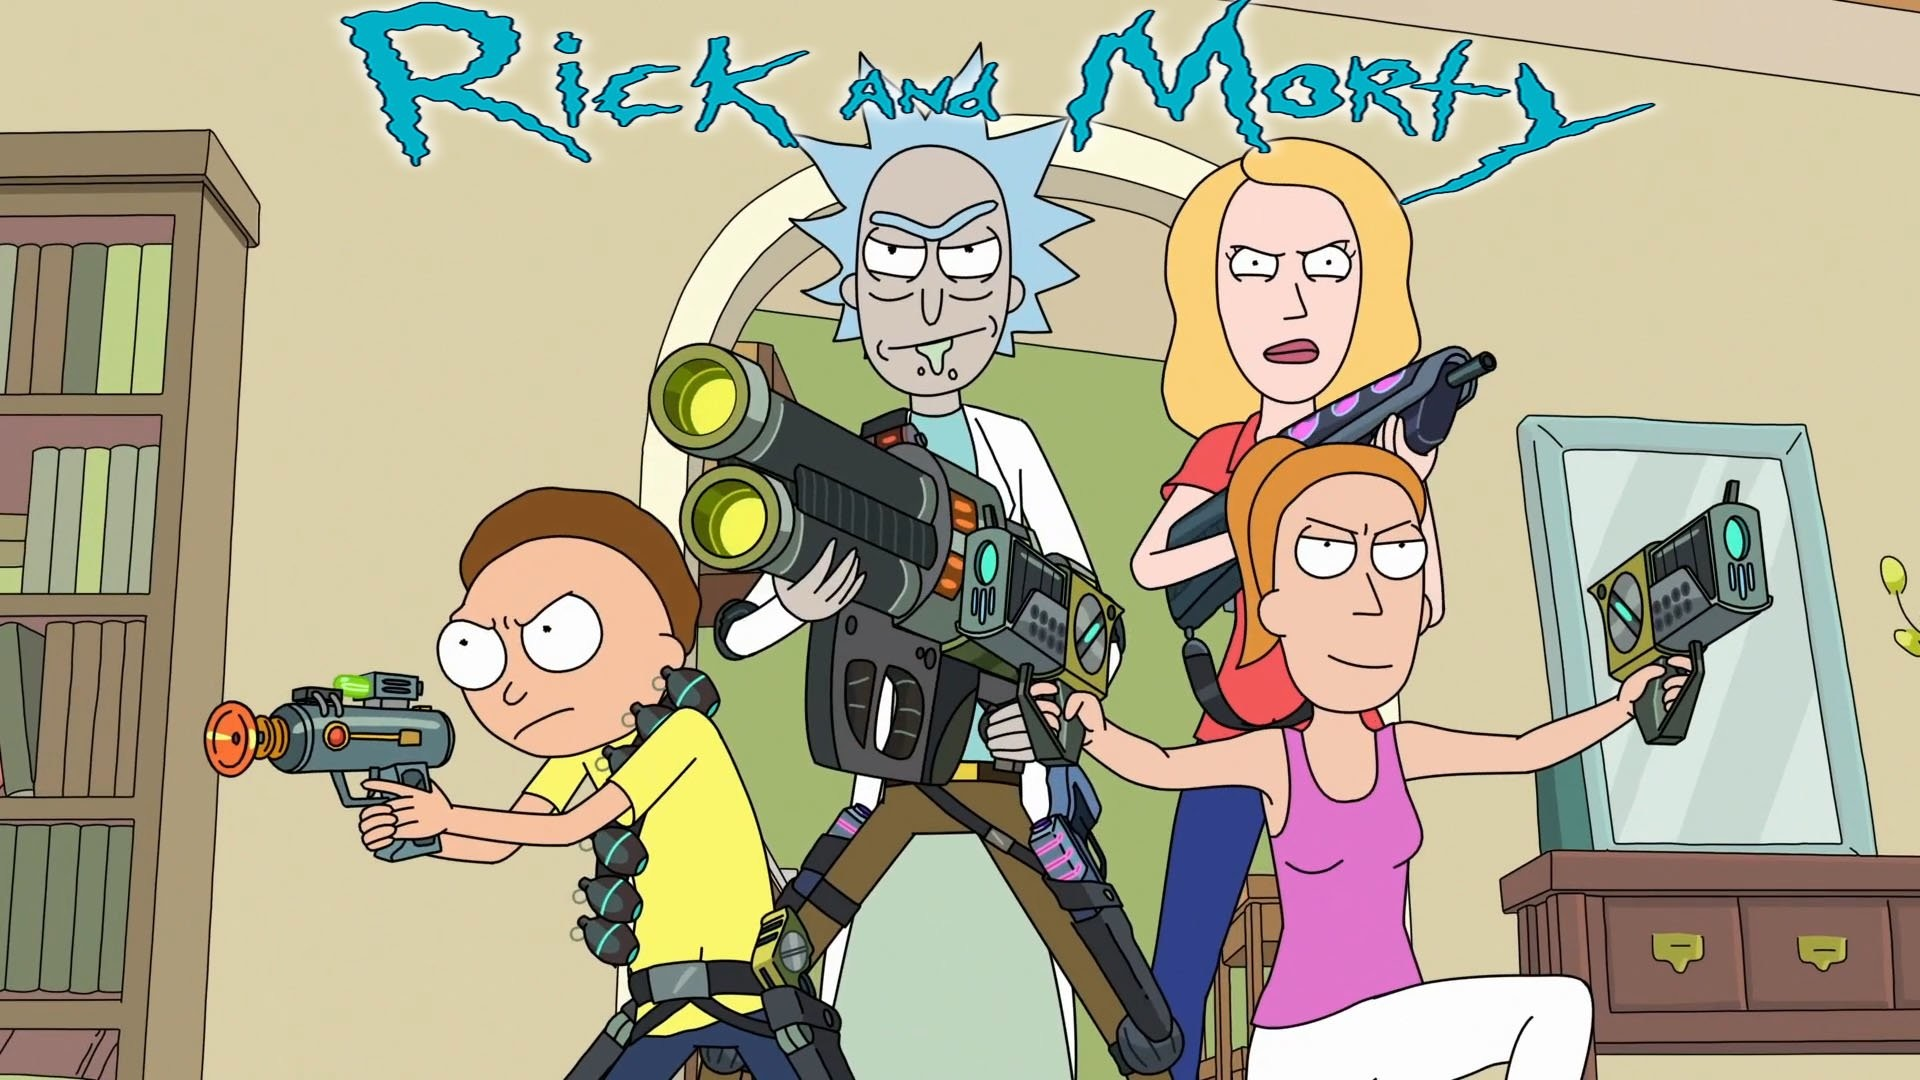 Rick and Morty Season 5 Voice Cast